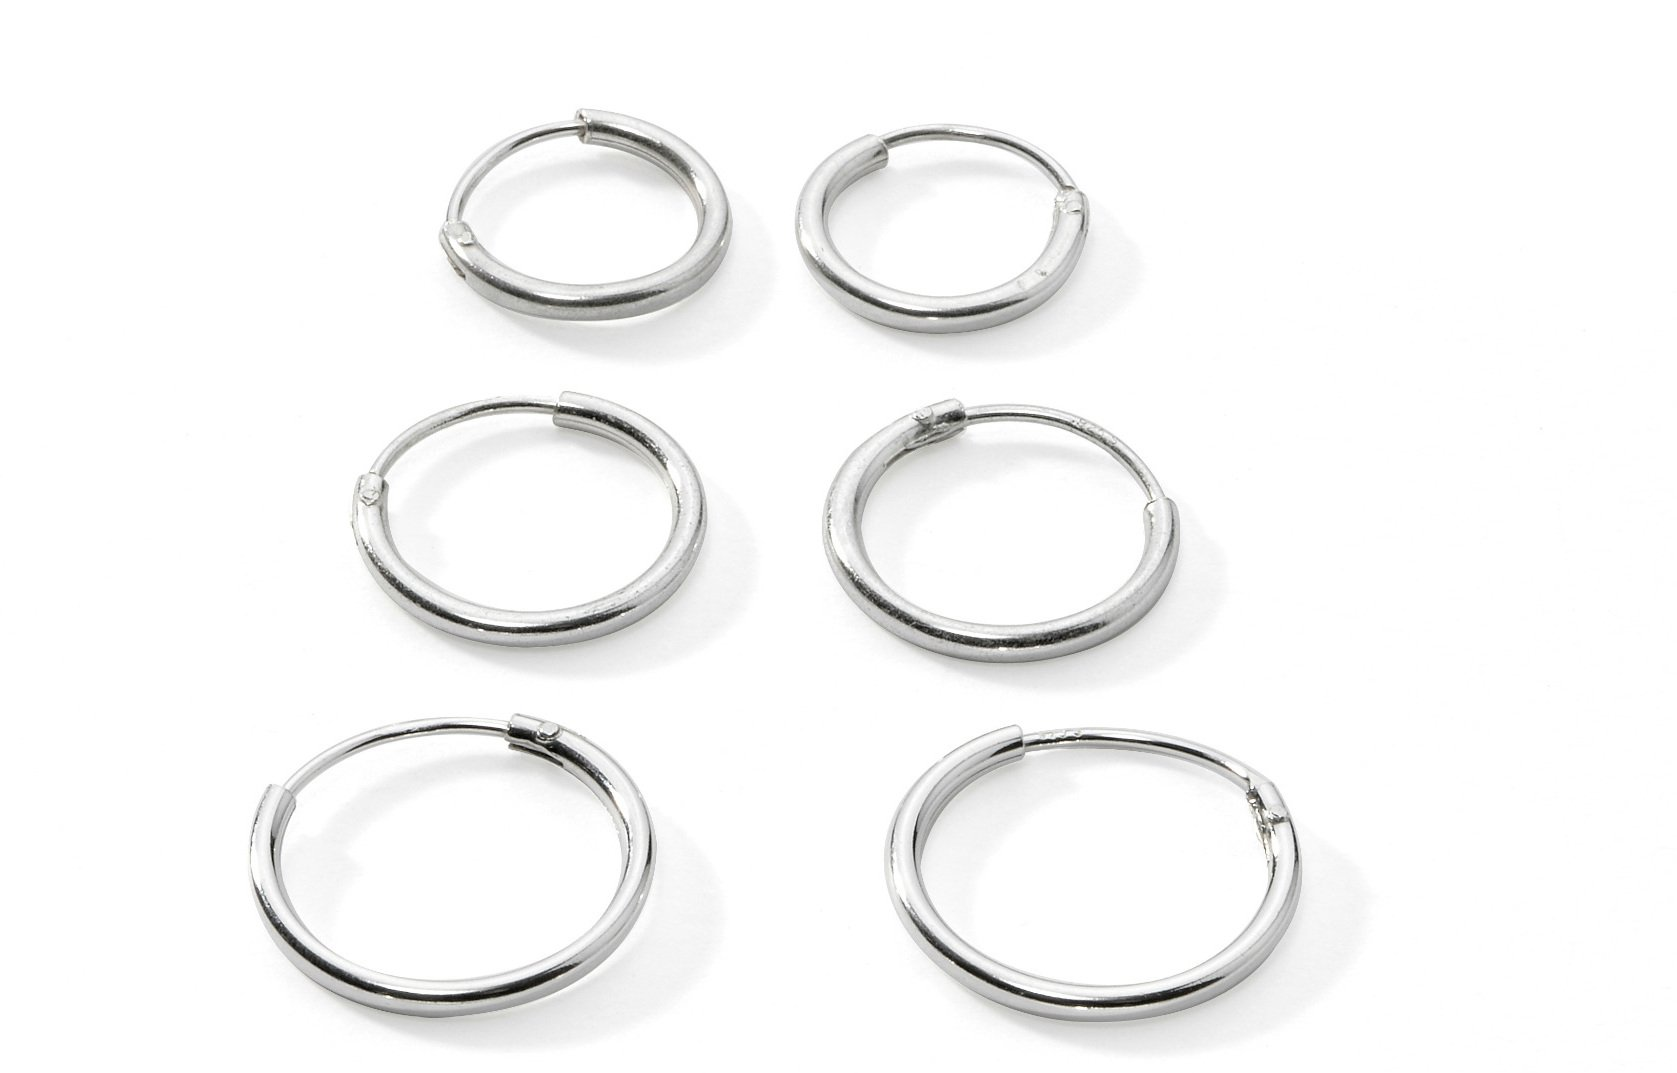 Three Pairs Sterling Silver Small Endless Hoop Earrings for Cartilage, Nose or Lips, 10mm 12mm 14mm by Silverline Jewelry